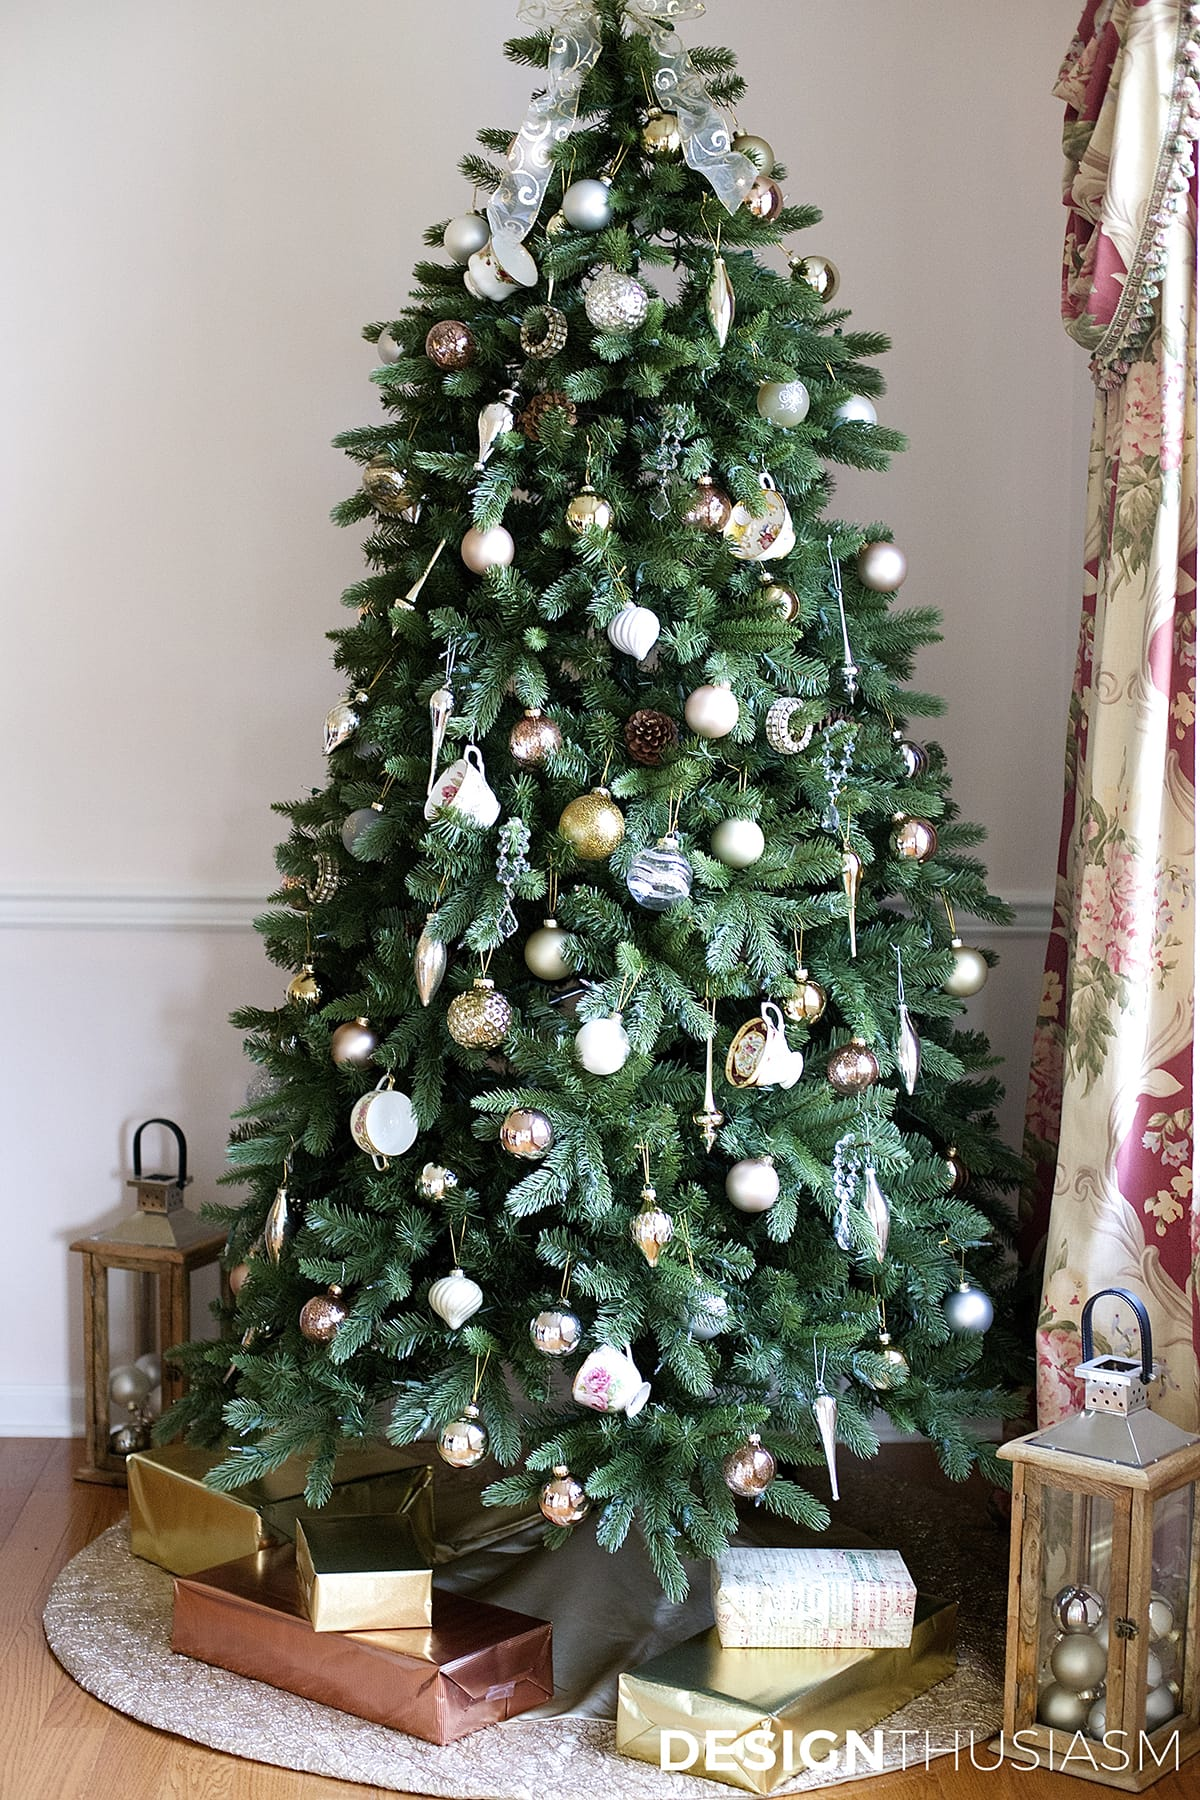 French Country teacup Christmas tree